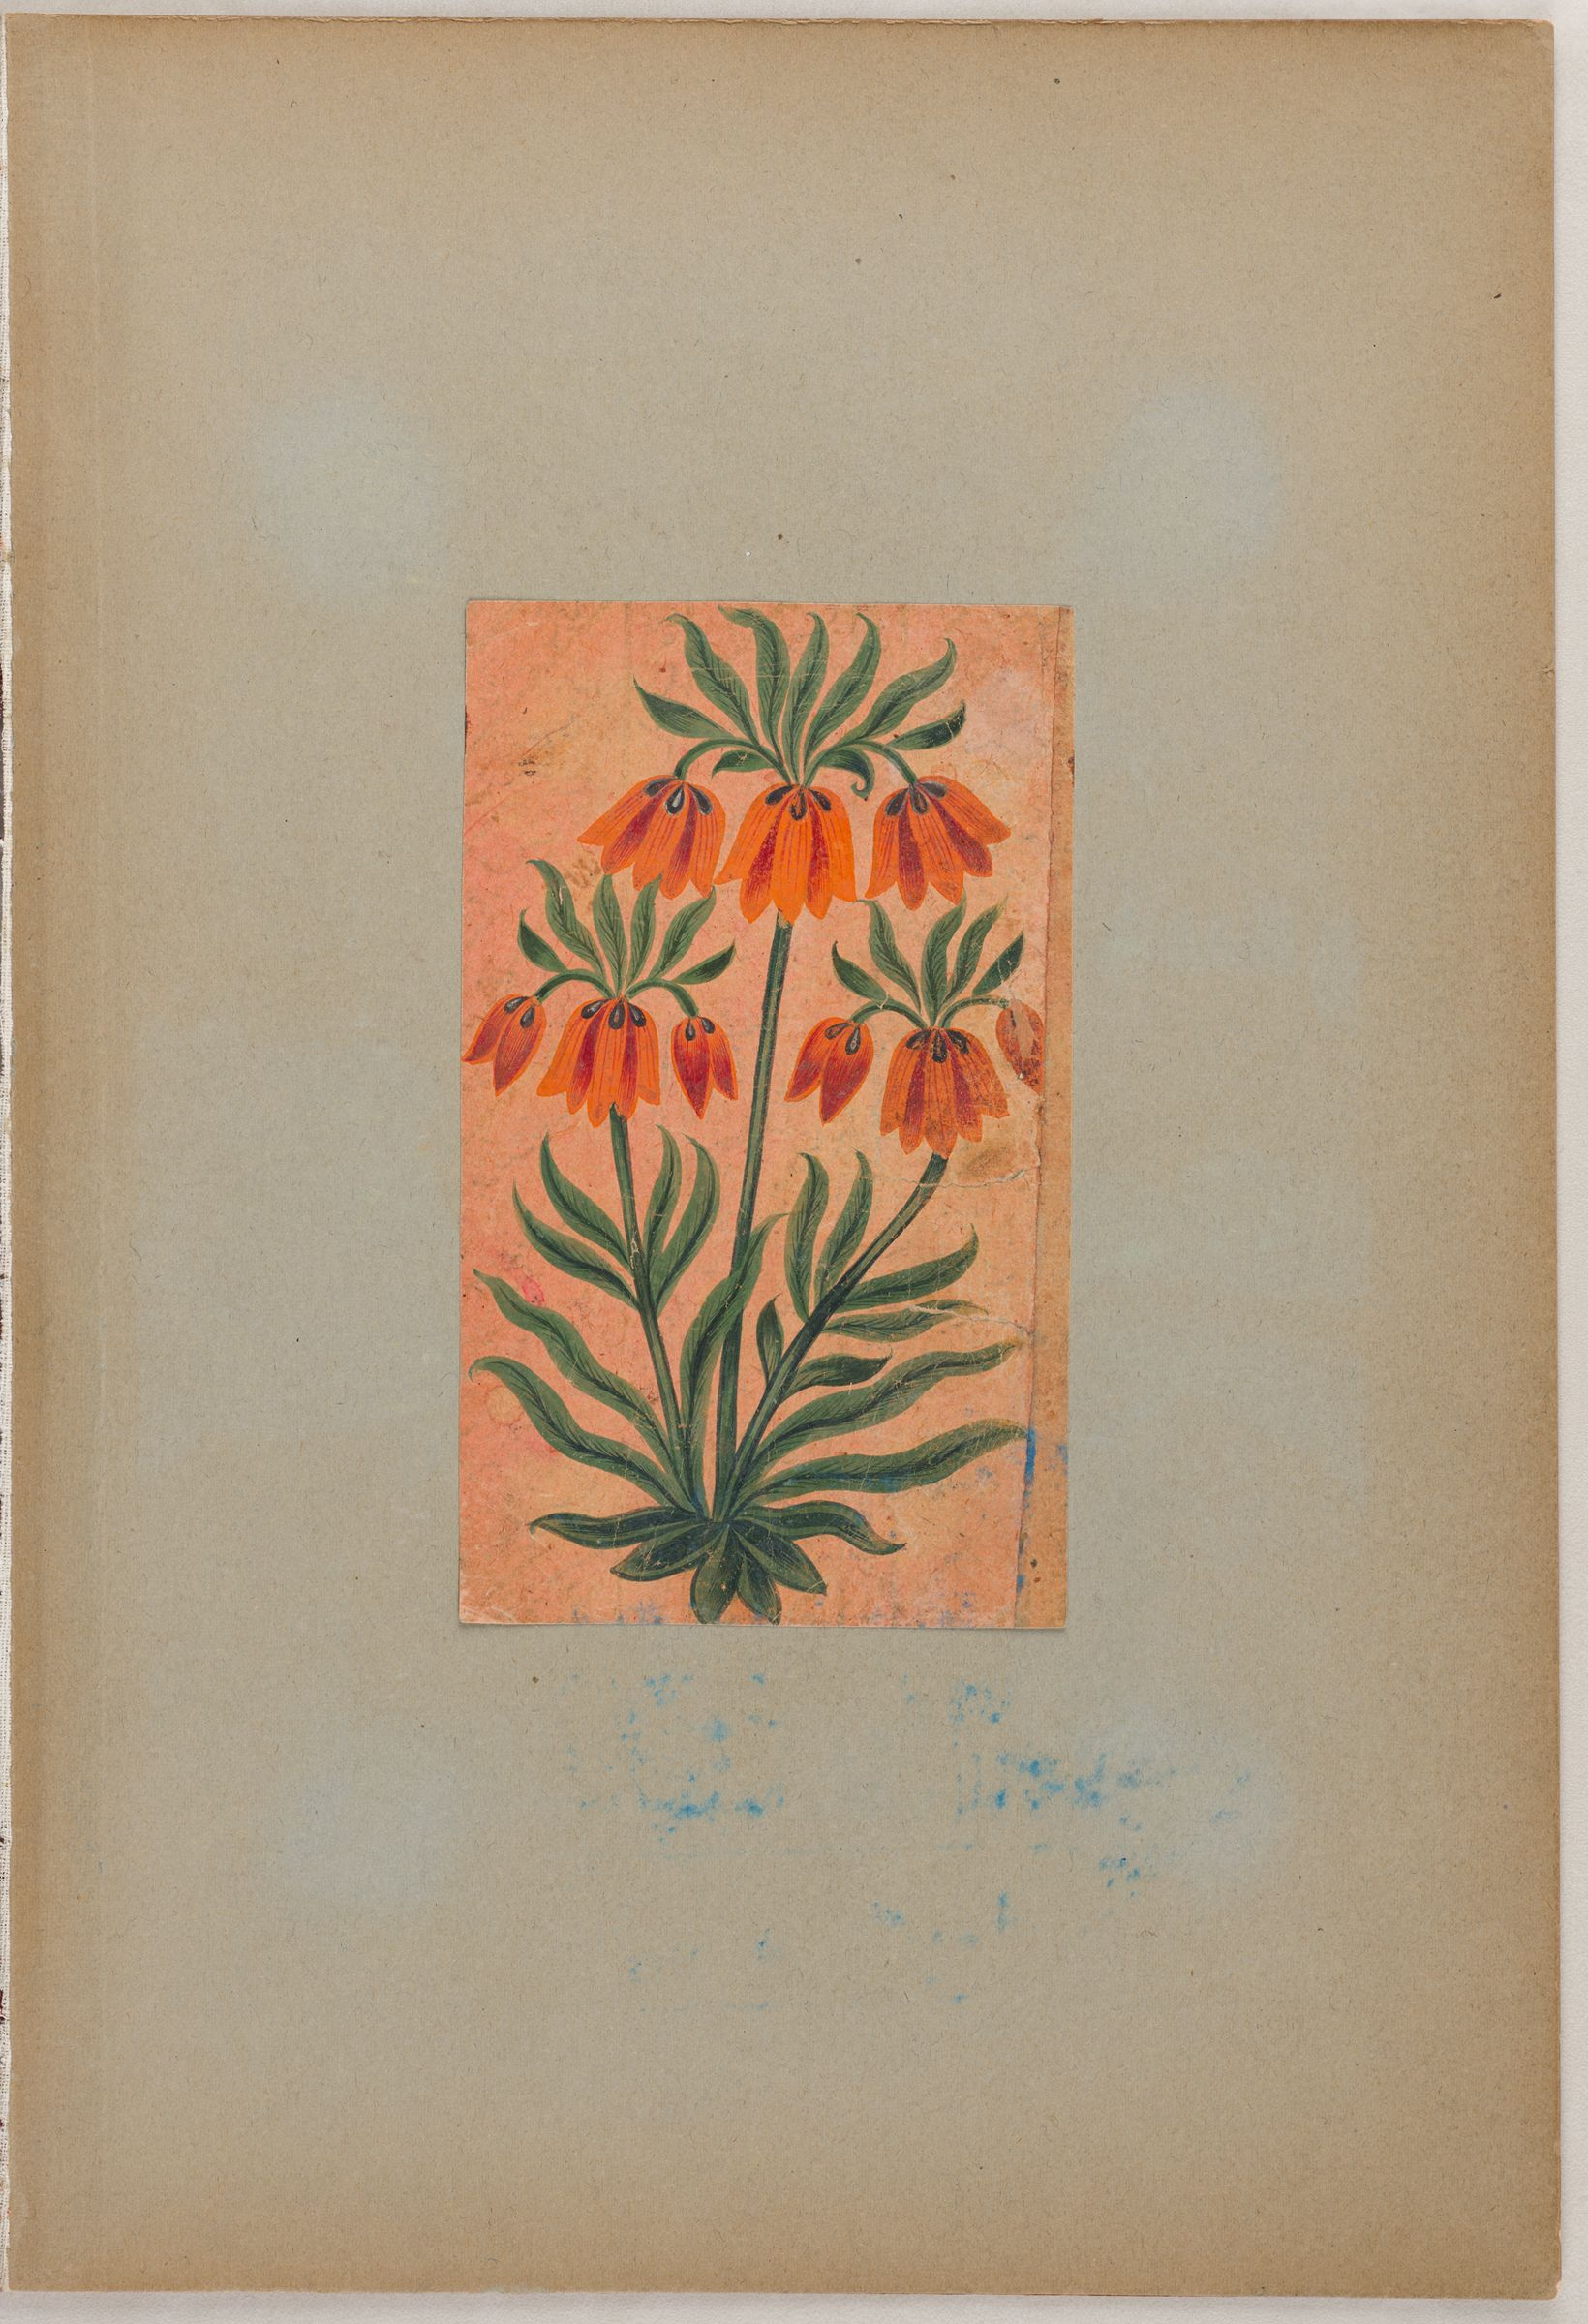 Folio 1 From An Album Of Drawings And Paintings: Folio From A Qu'Ran: Sura 1 (Recto); Crown Imperial (Fritillaria Imperialis) (Verso)